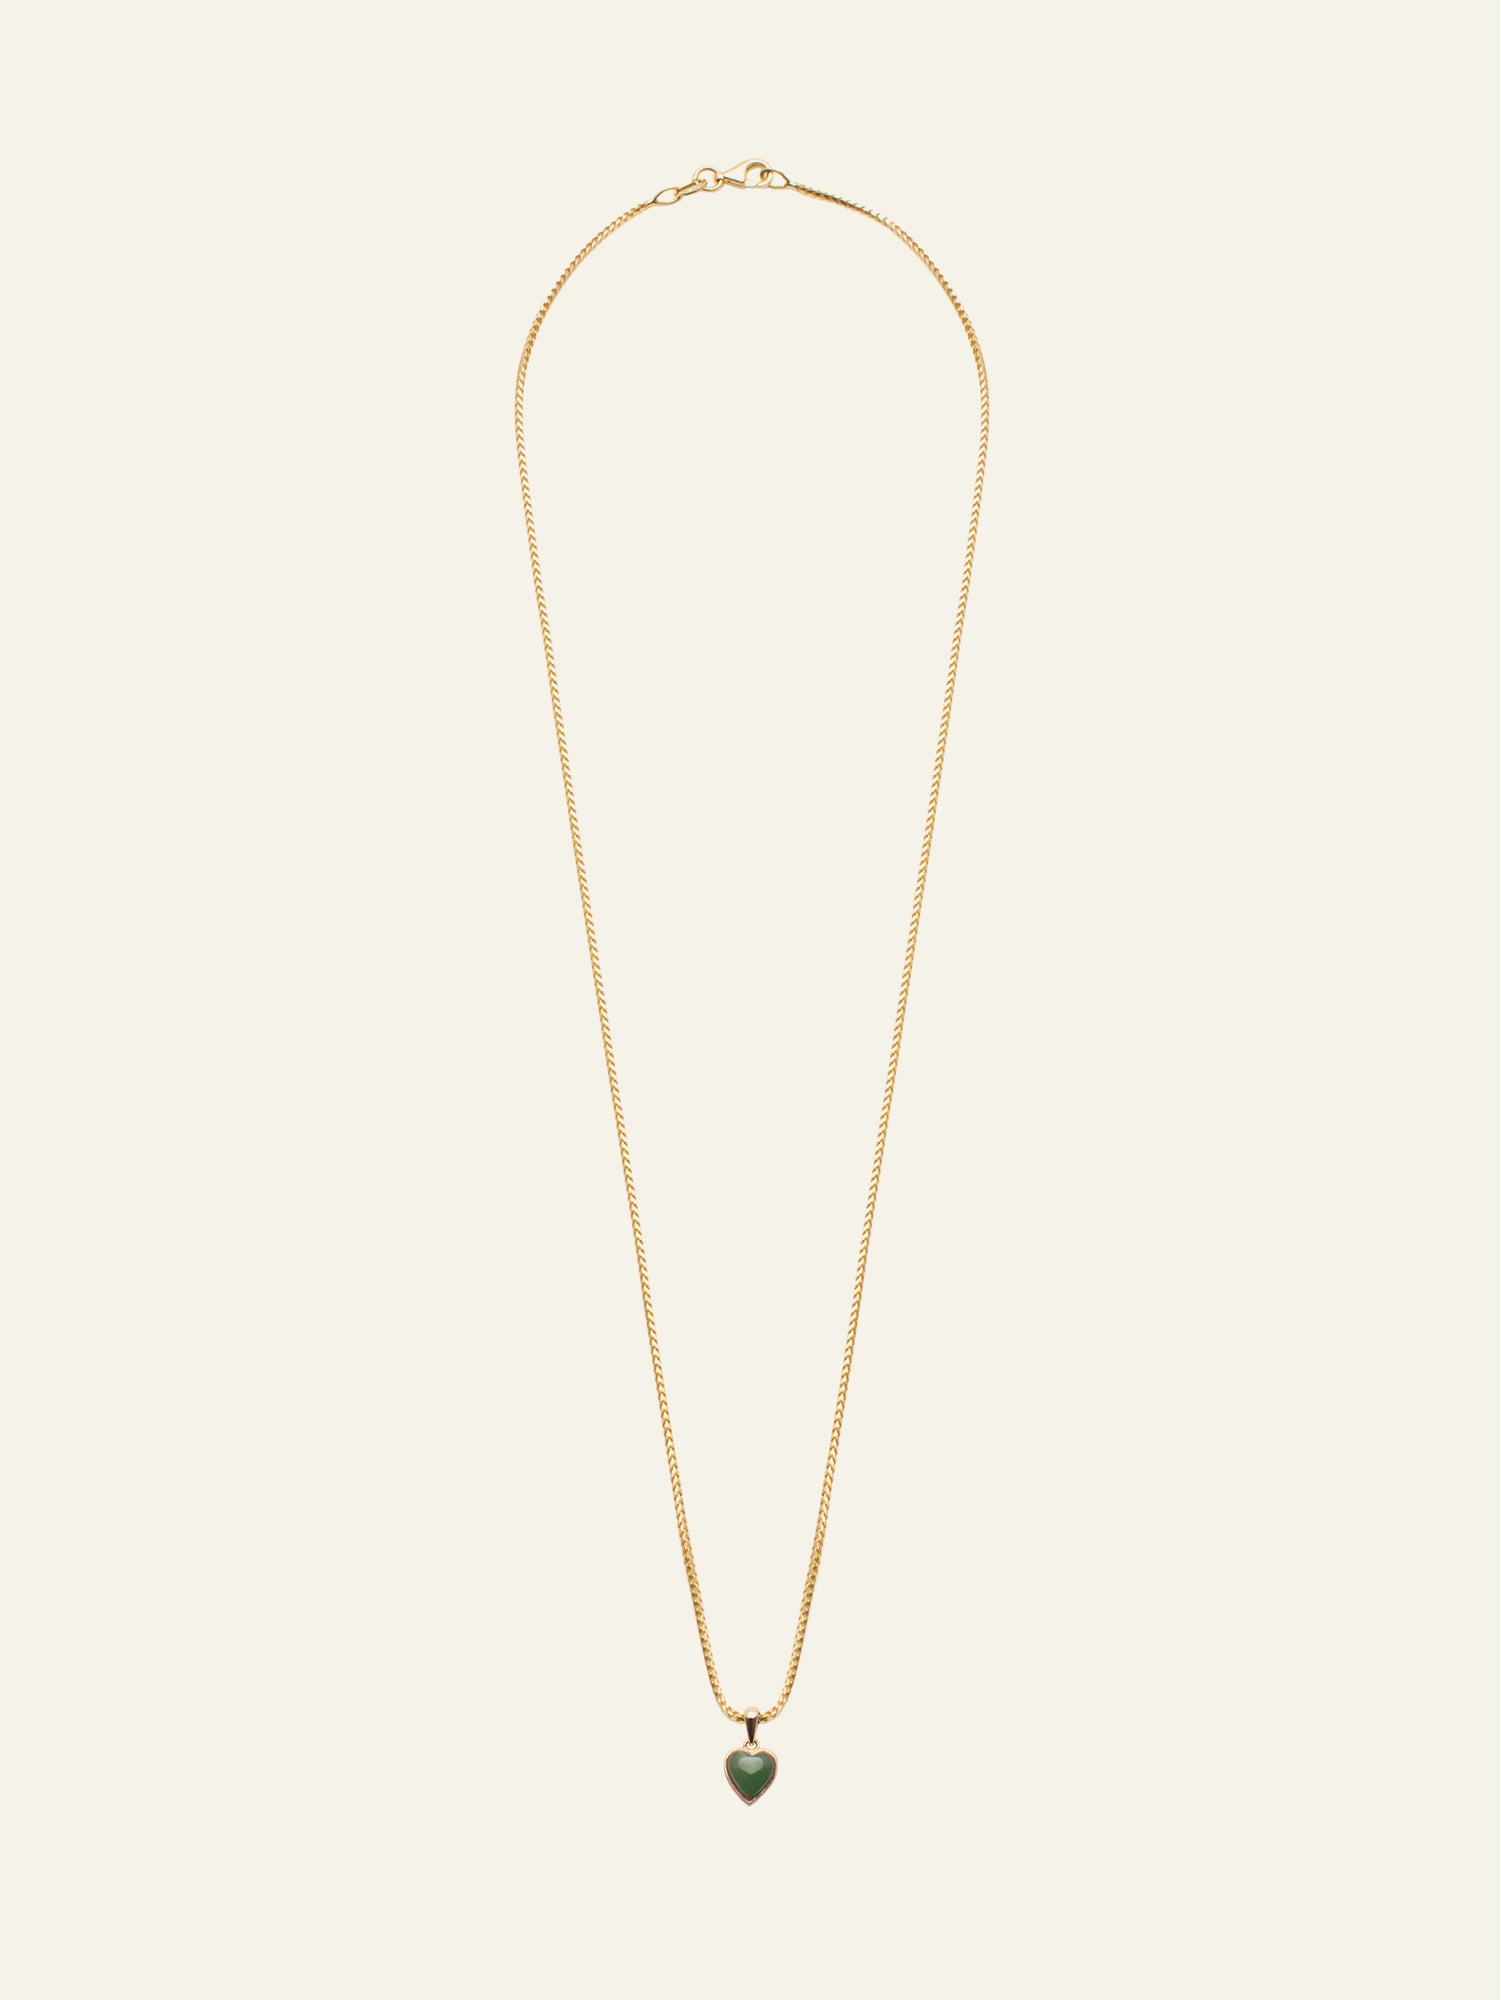 Gemma Necklace